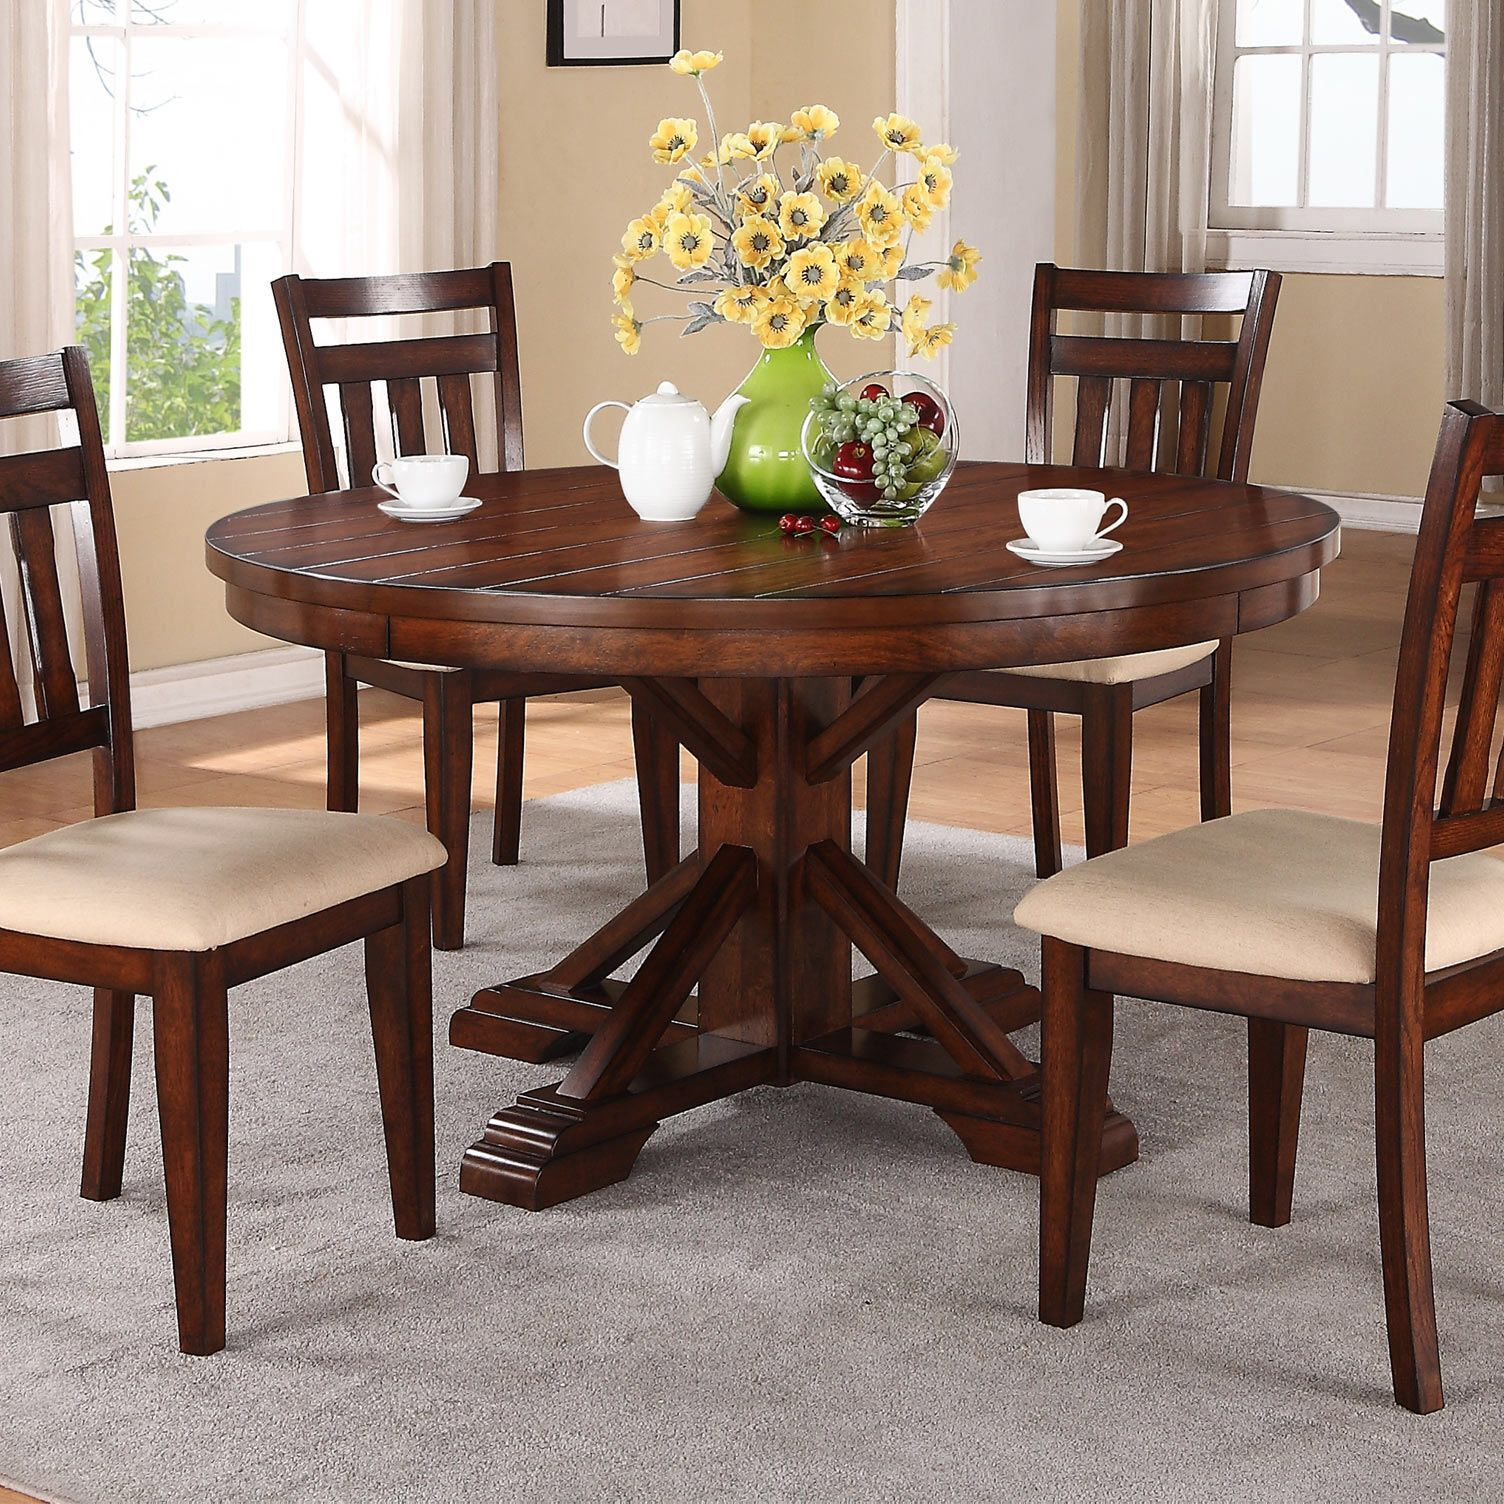 Kingston Dining Table #pubsetinlivingroom